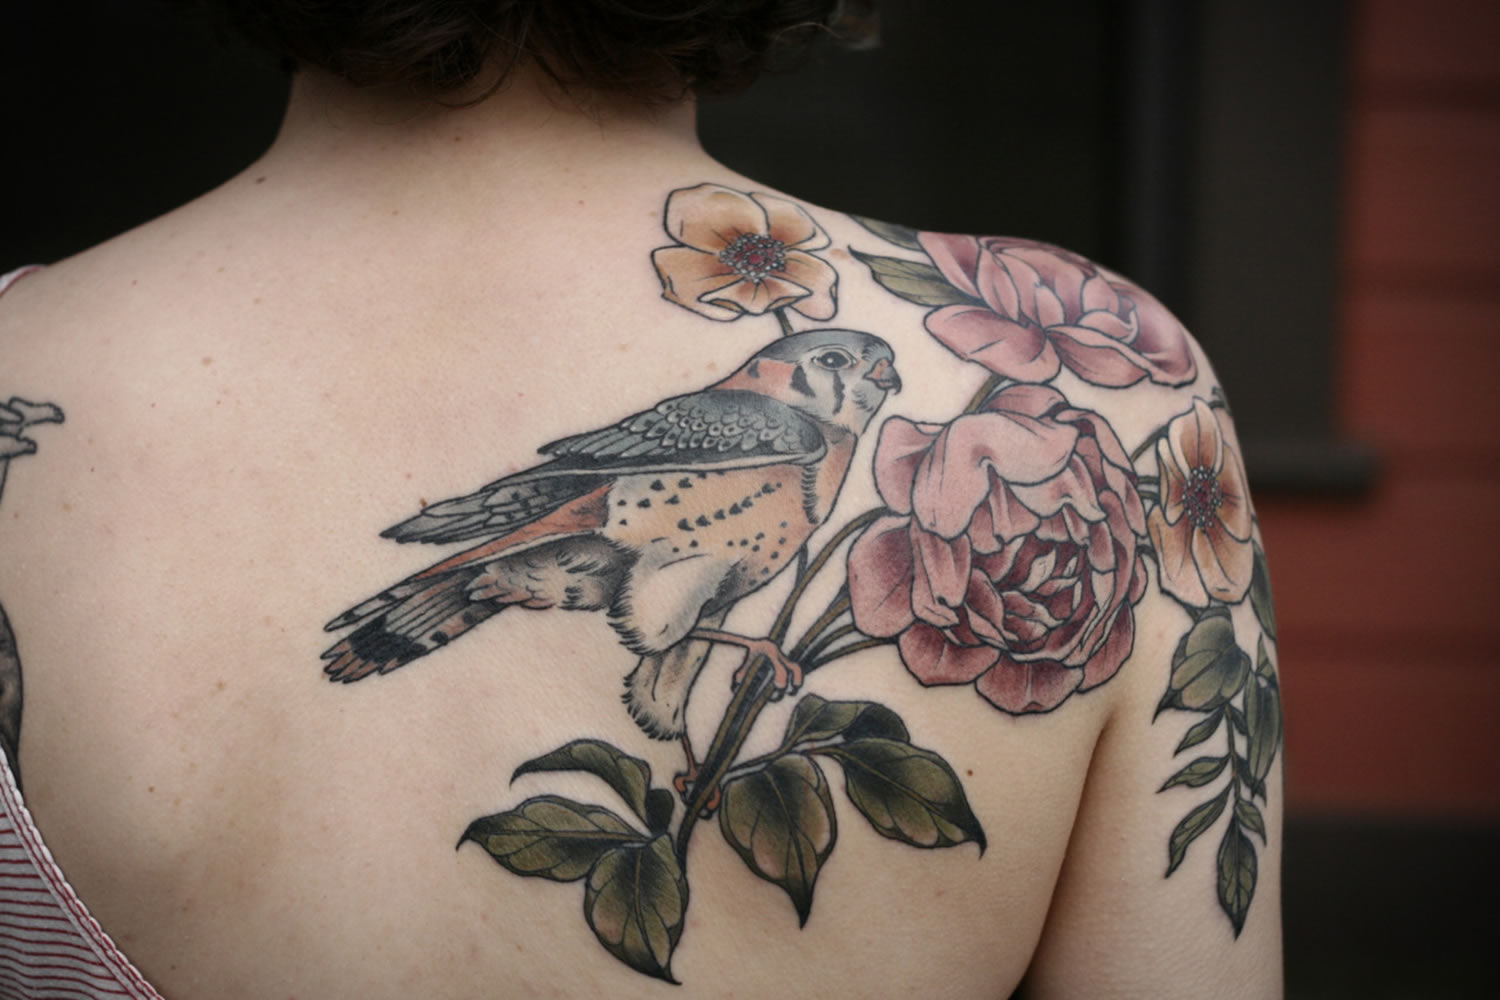 bird and roses tattoo back and shoulder